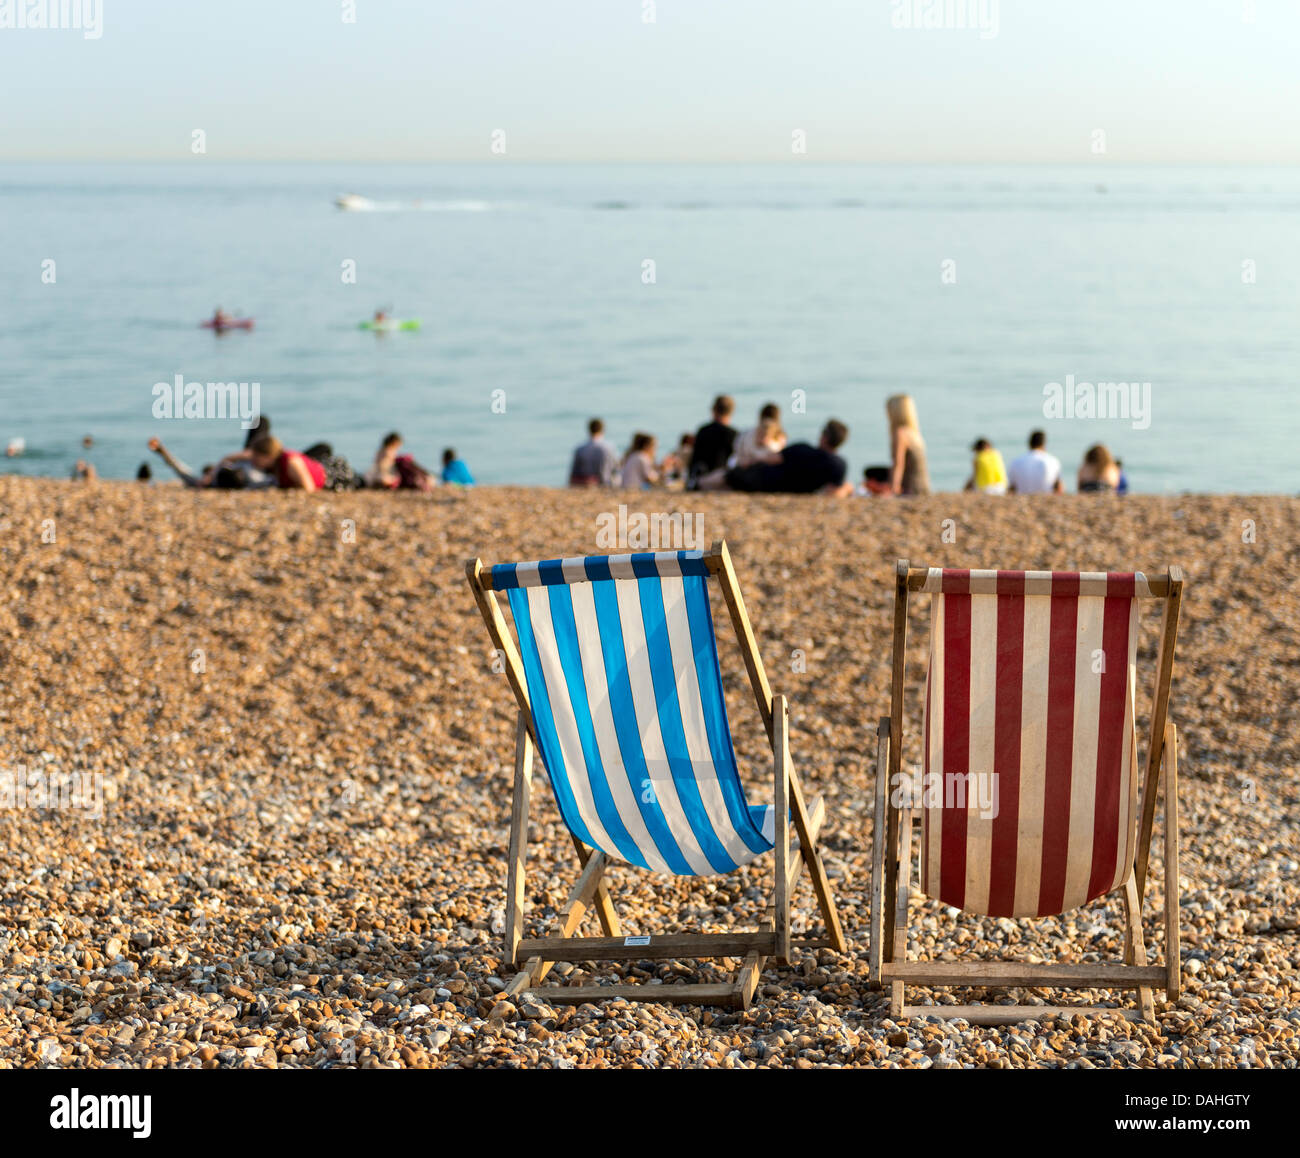 Empty deck chairs on the beach in the afternoon Summer Brighton South England Great Britain UK - Stock Image